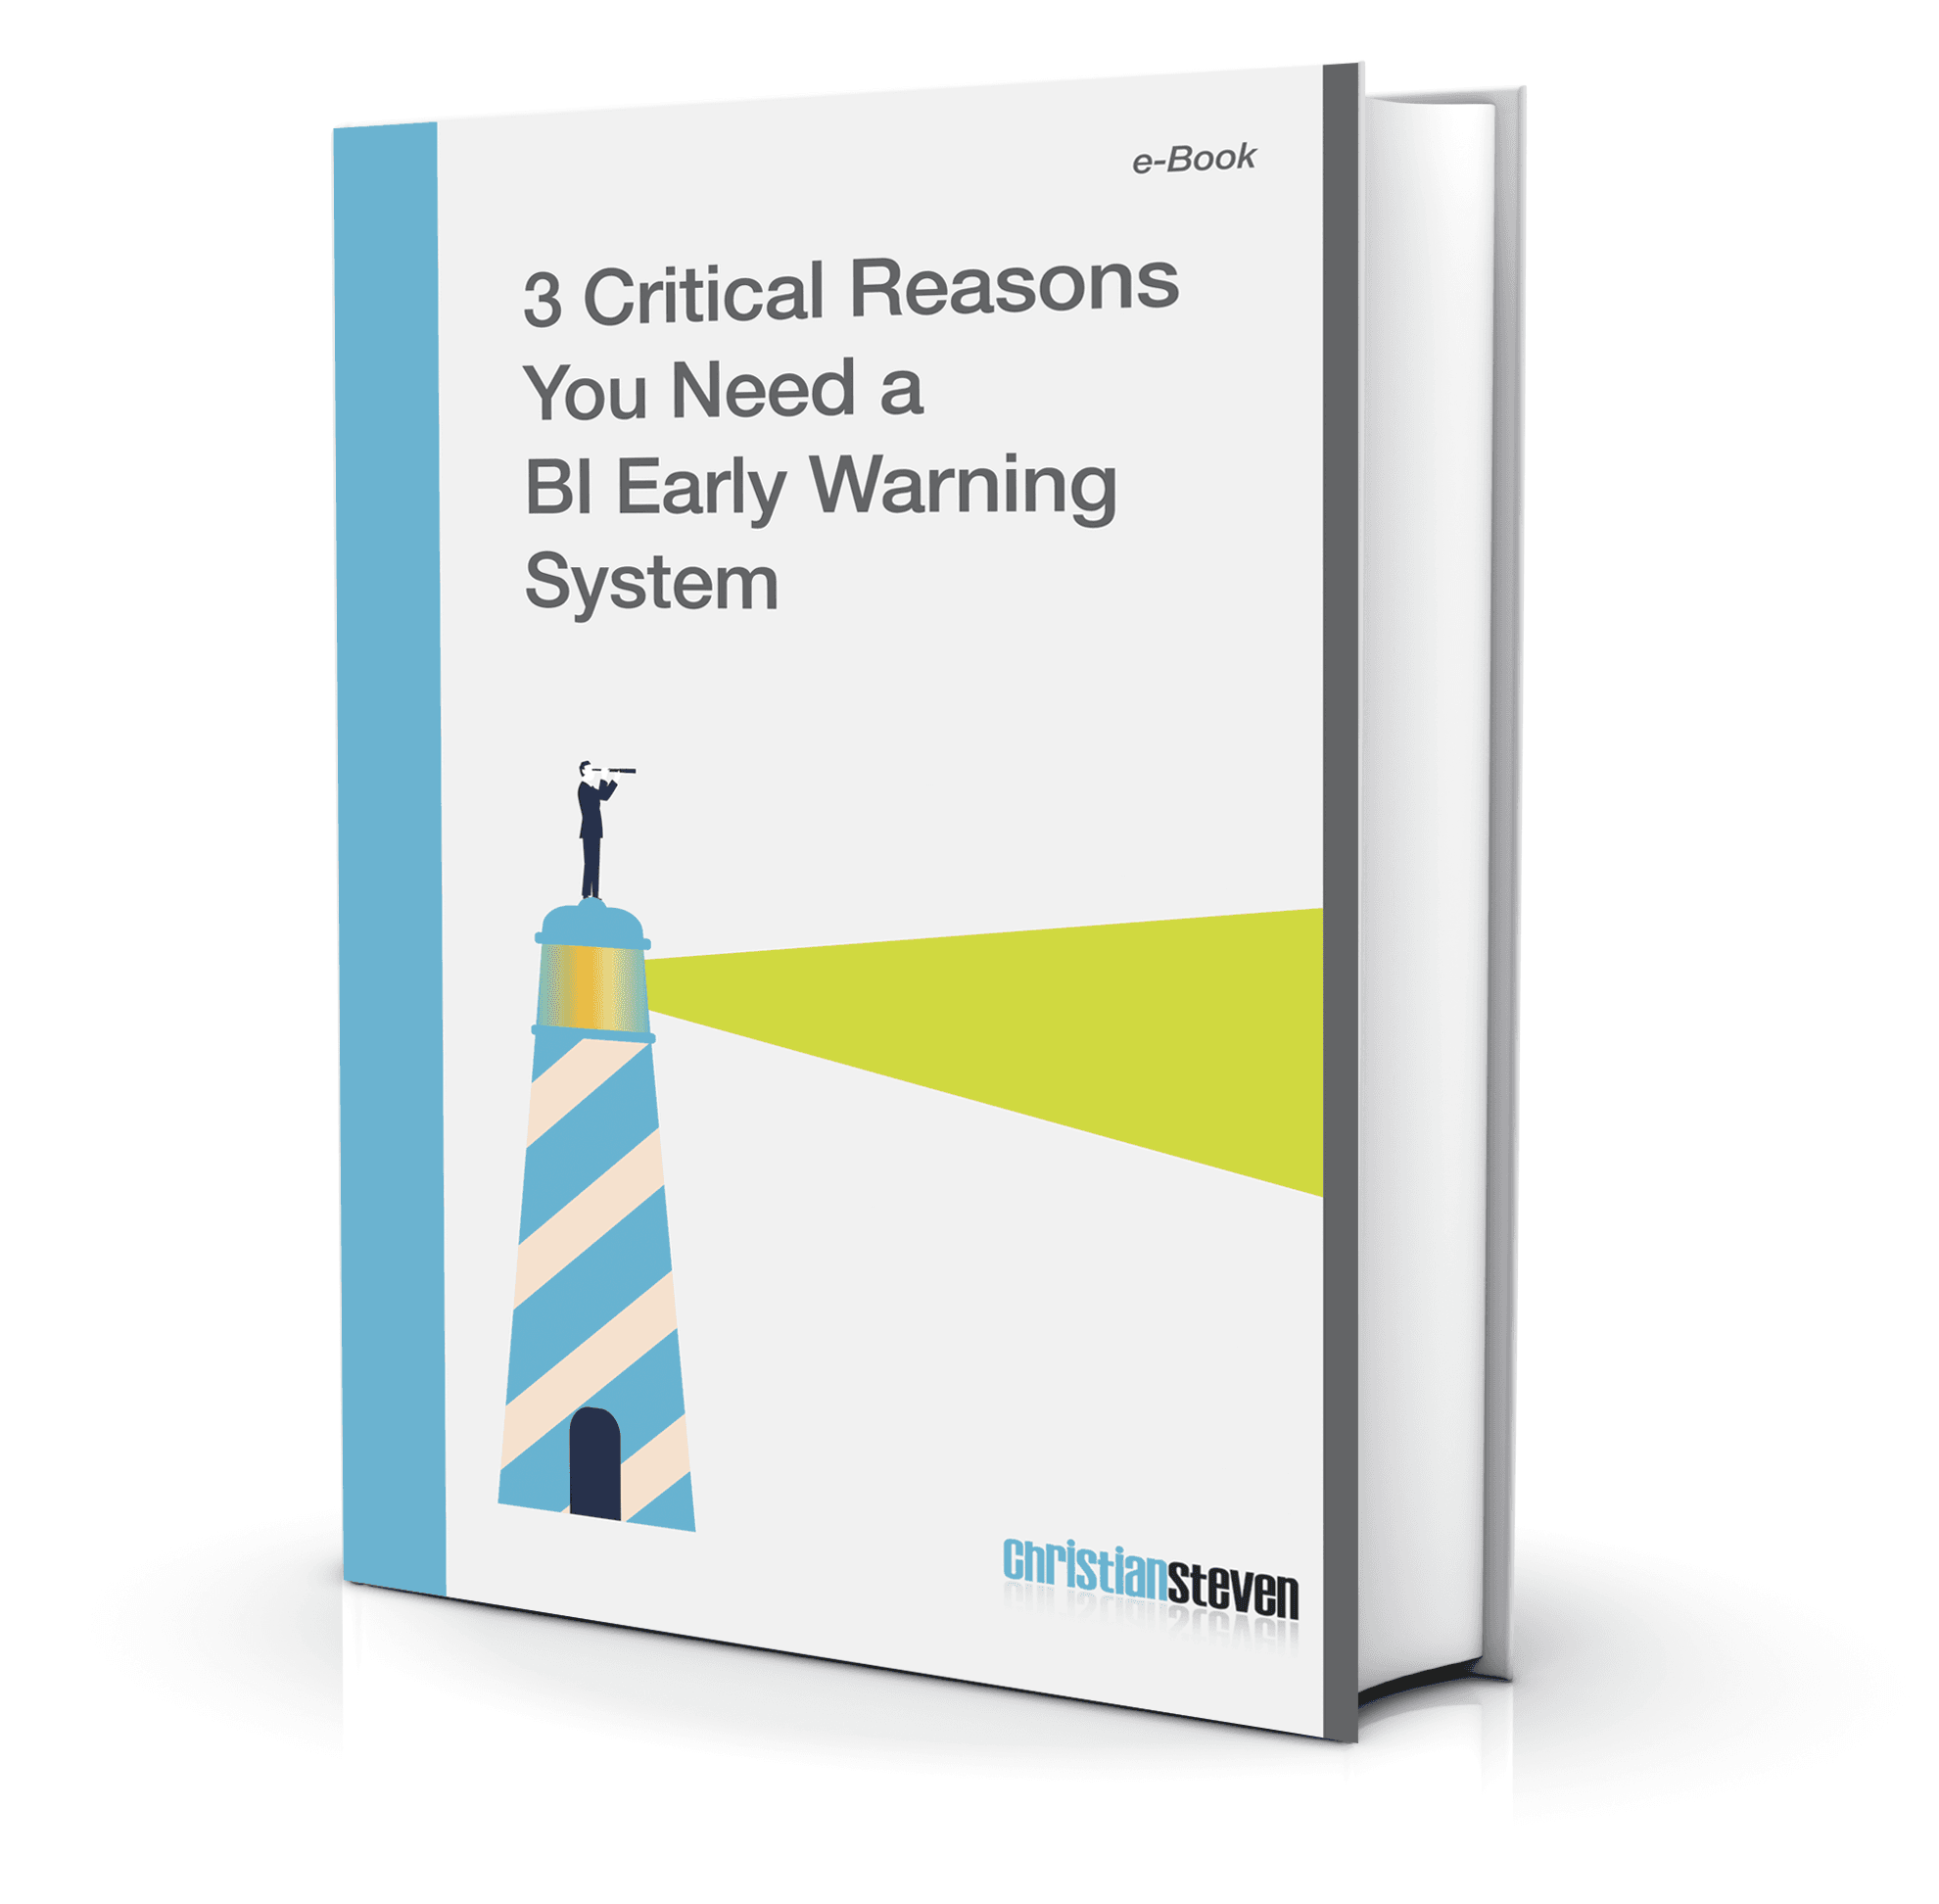 eBook: 3 Critical Reasons You Need a BI Early Warning System